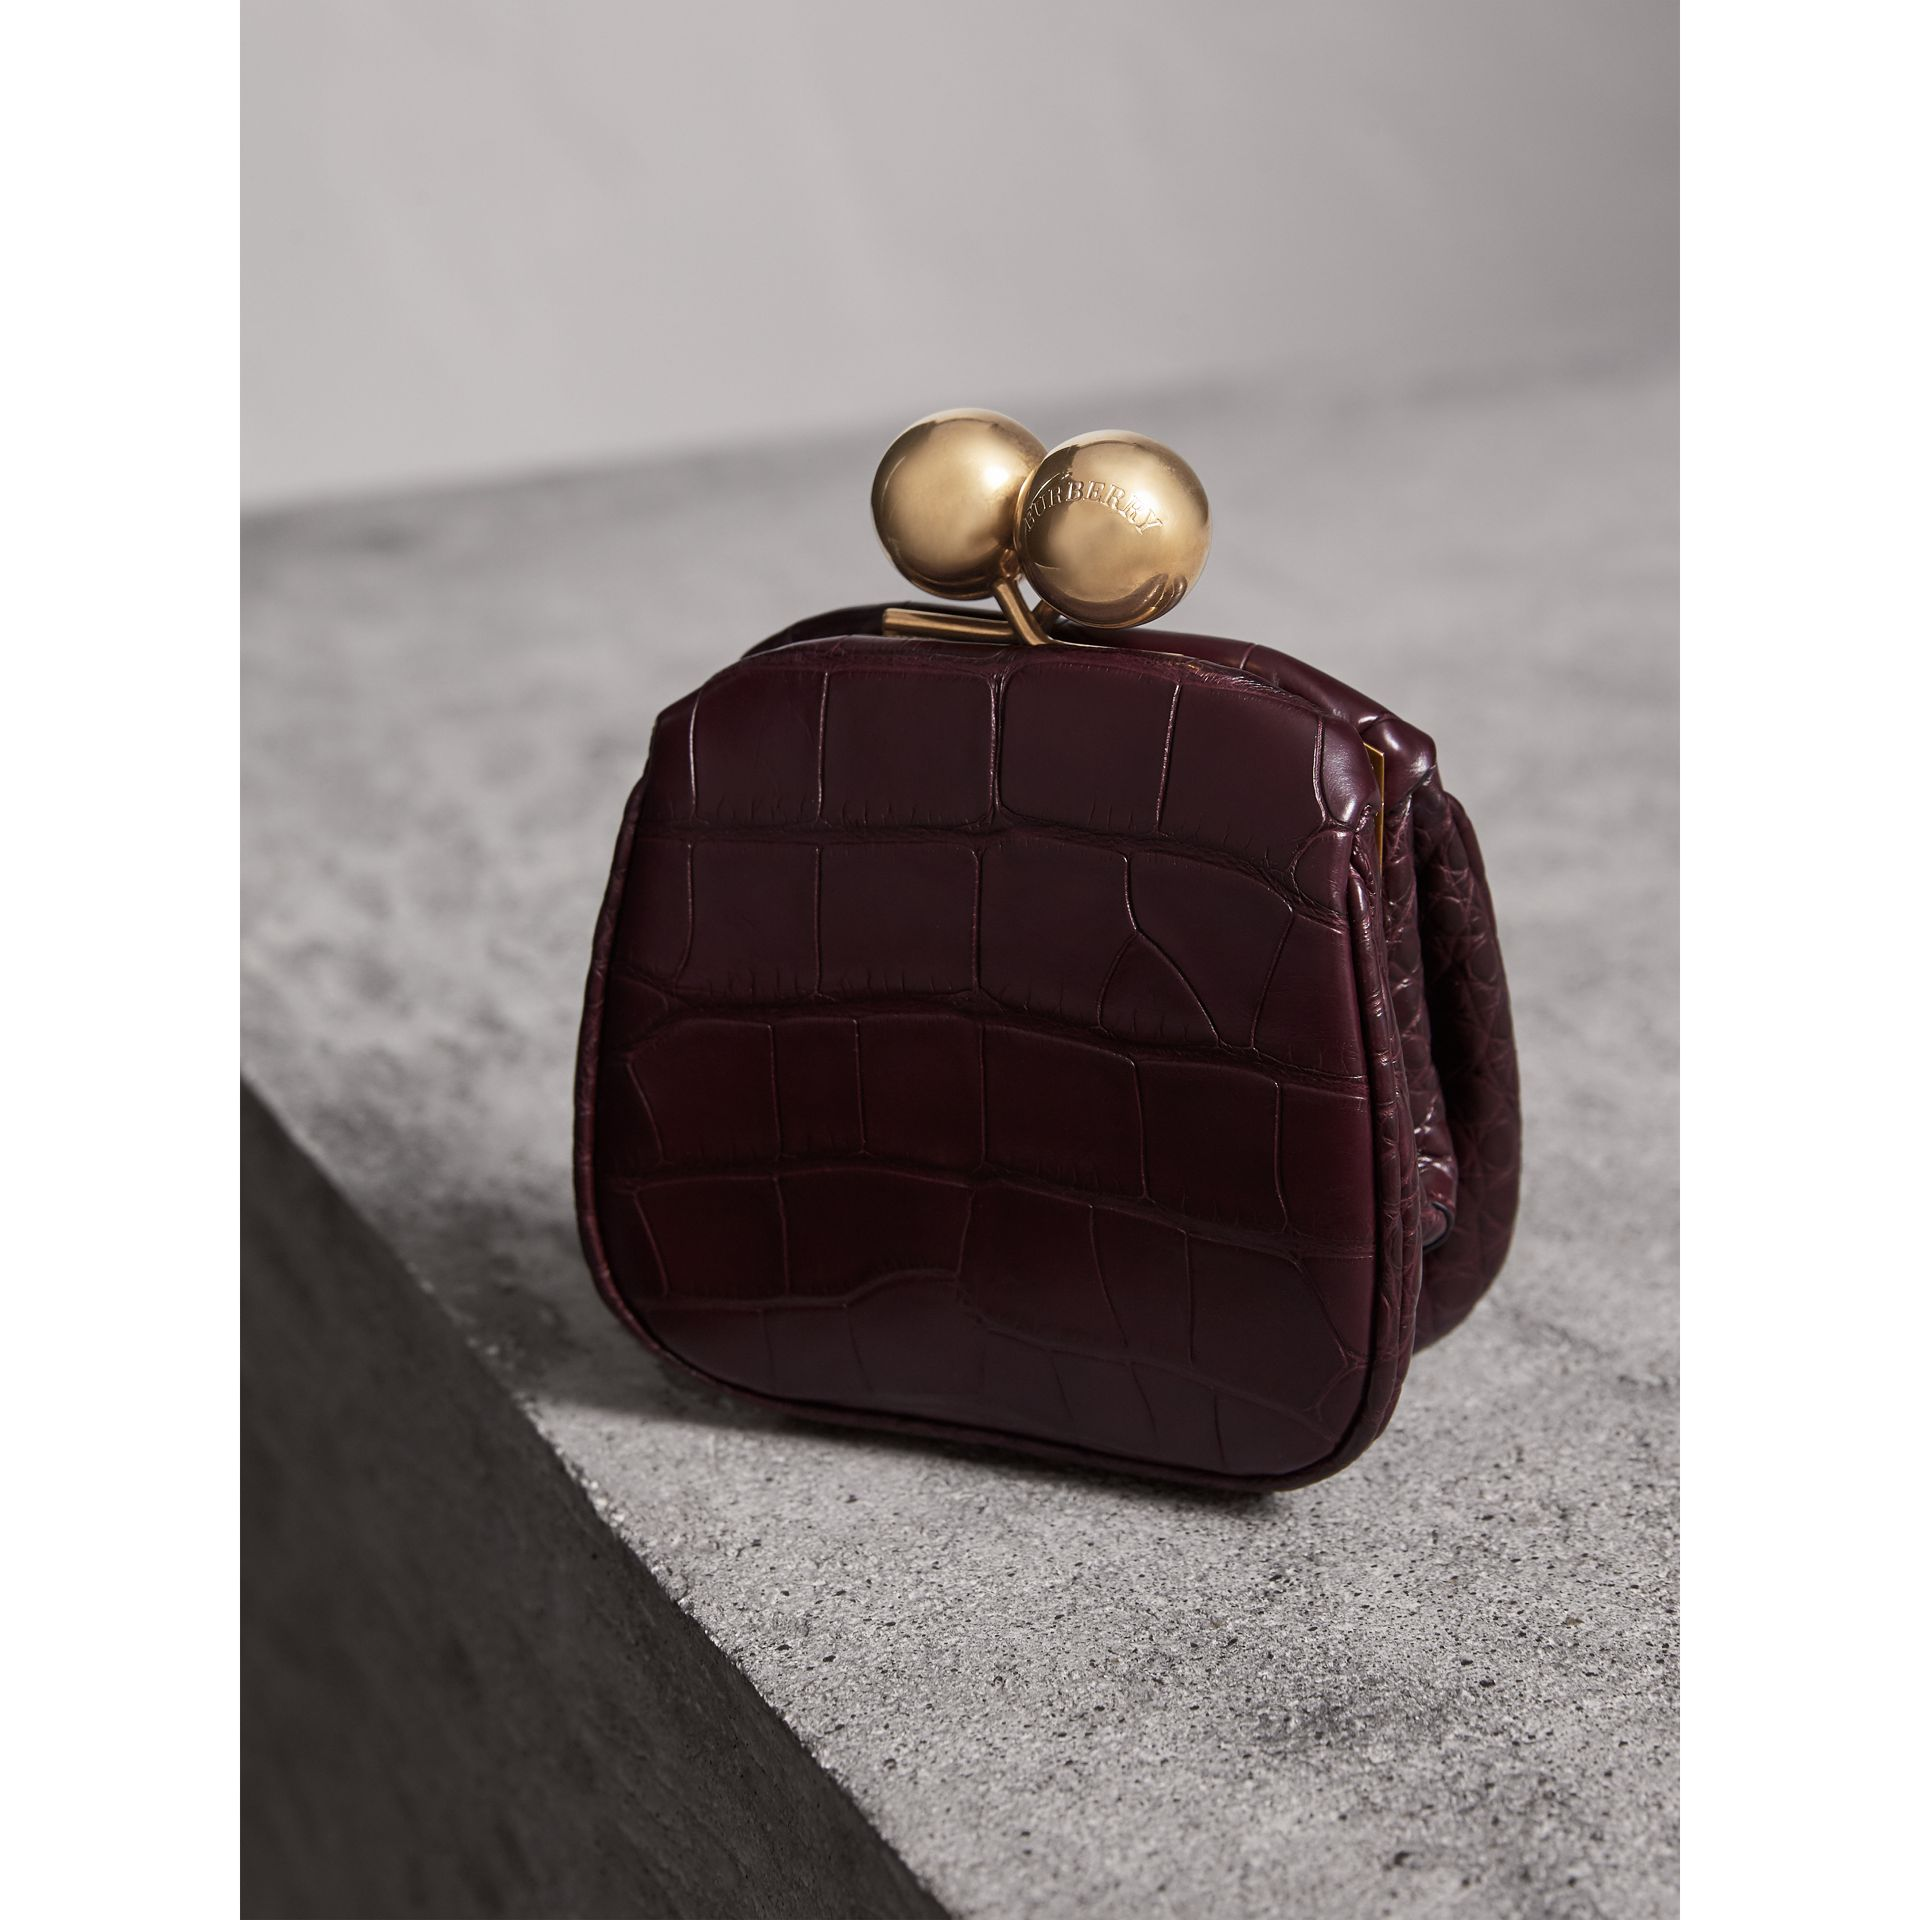 Mini Alligator Frame Bag in Dark Claret - Women | Burberry United Kingdom - gallery image 2